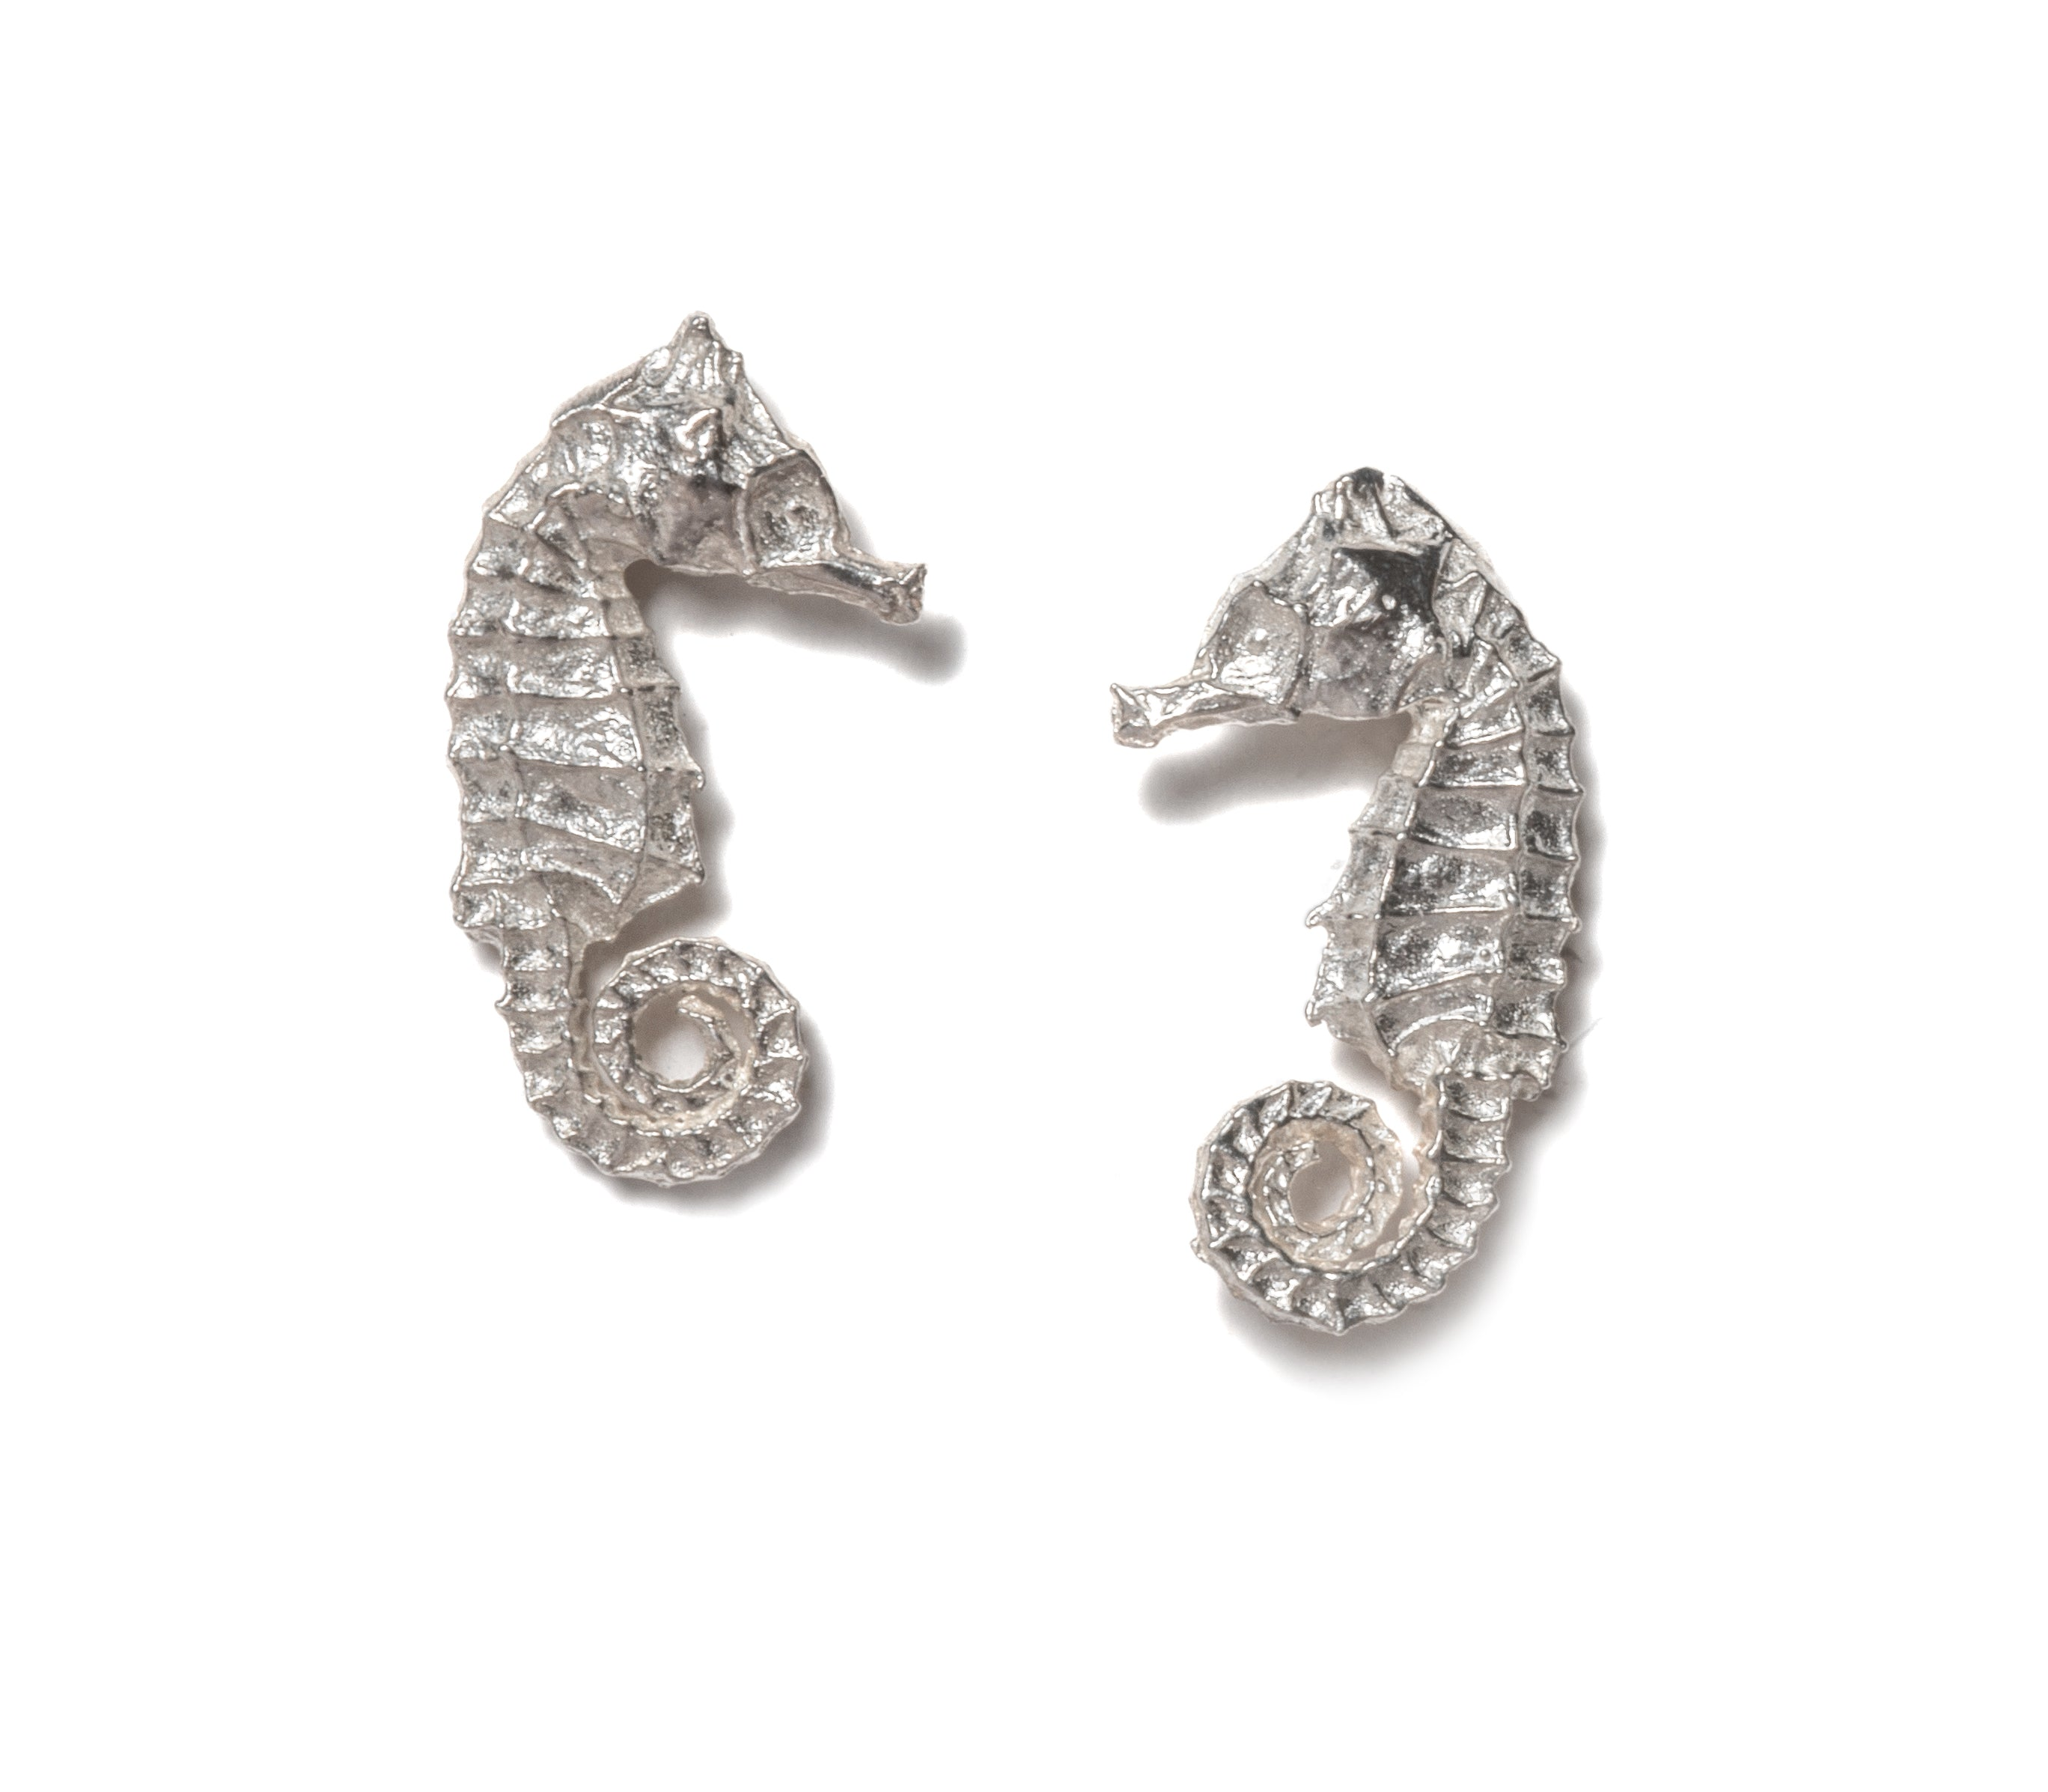 Tiny seahorse earrings ~ (polished silver)